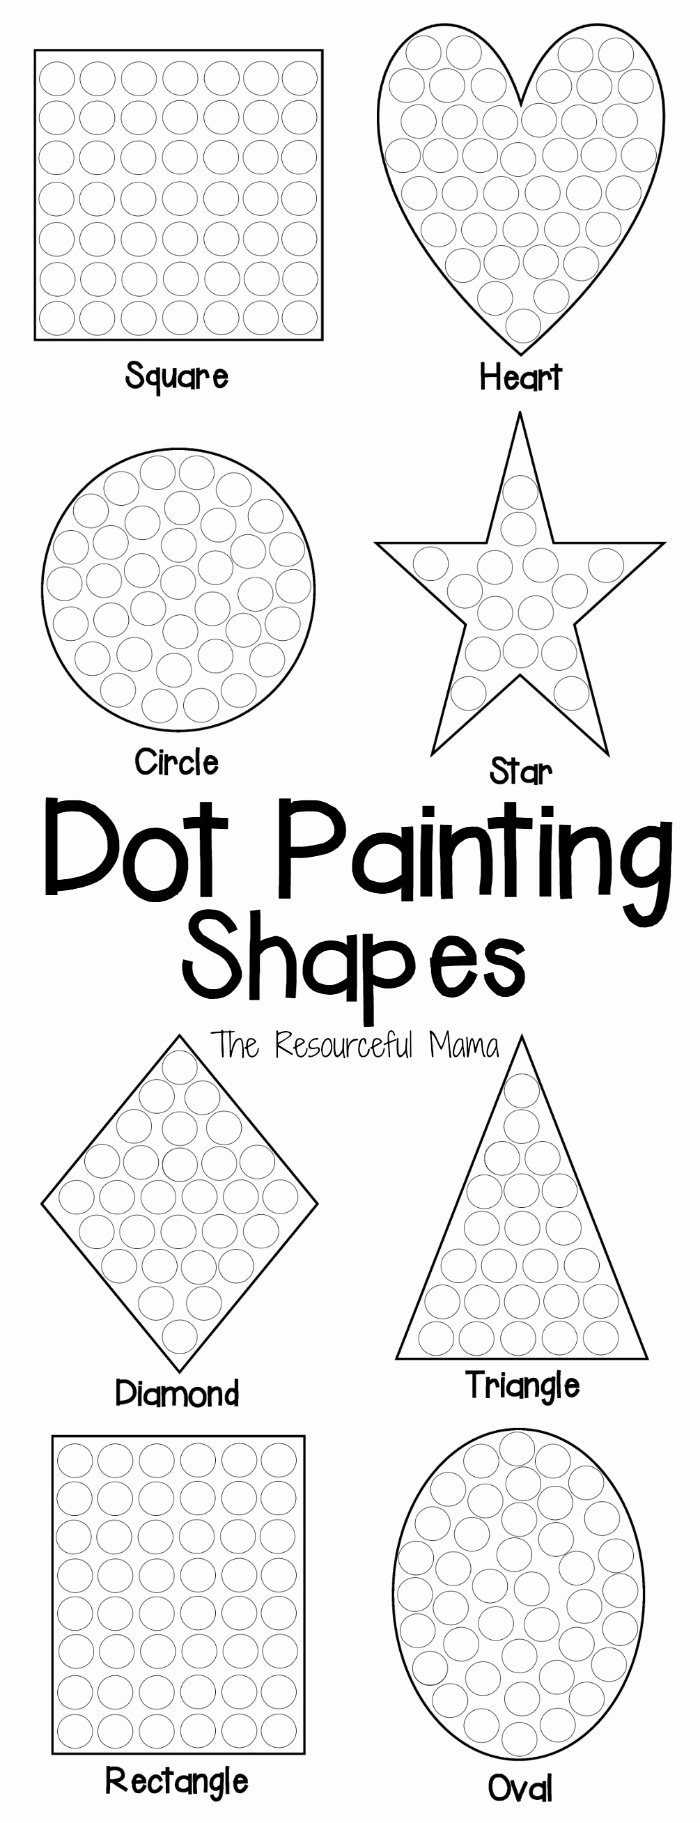 Eye Hand Coordination Worksheets for Preschoolers Best Of Shapes Dot Painting Free Printable the Resourceful Mama